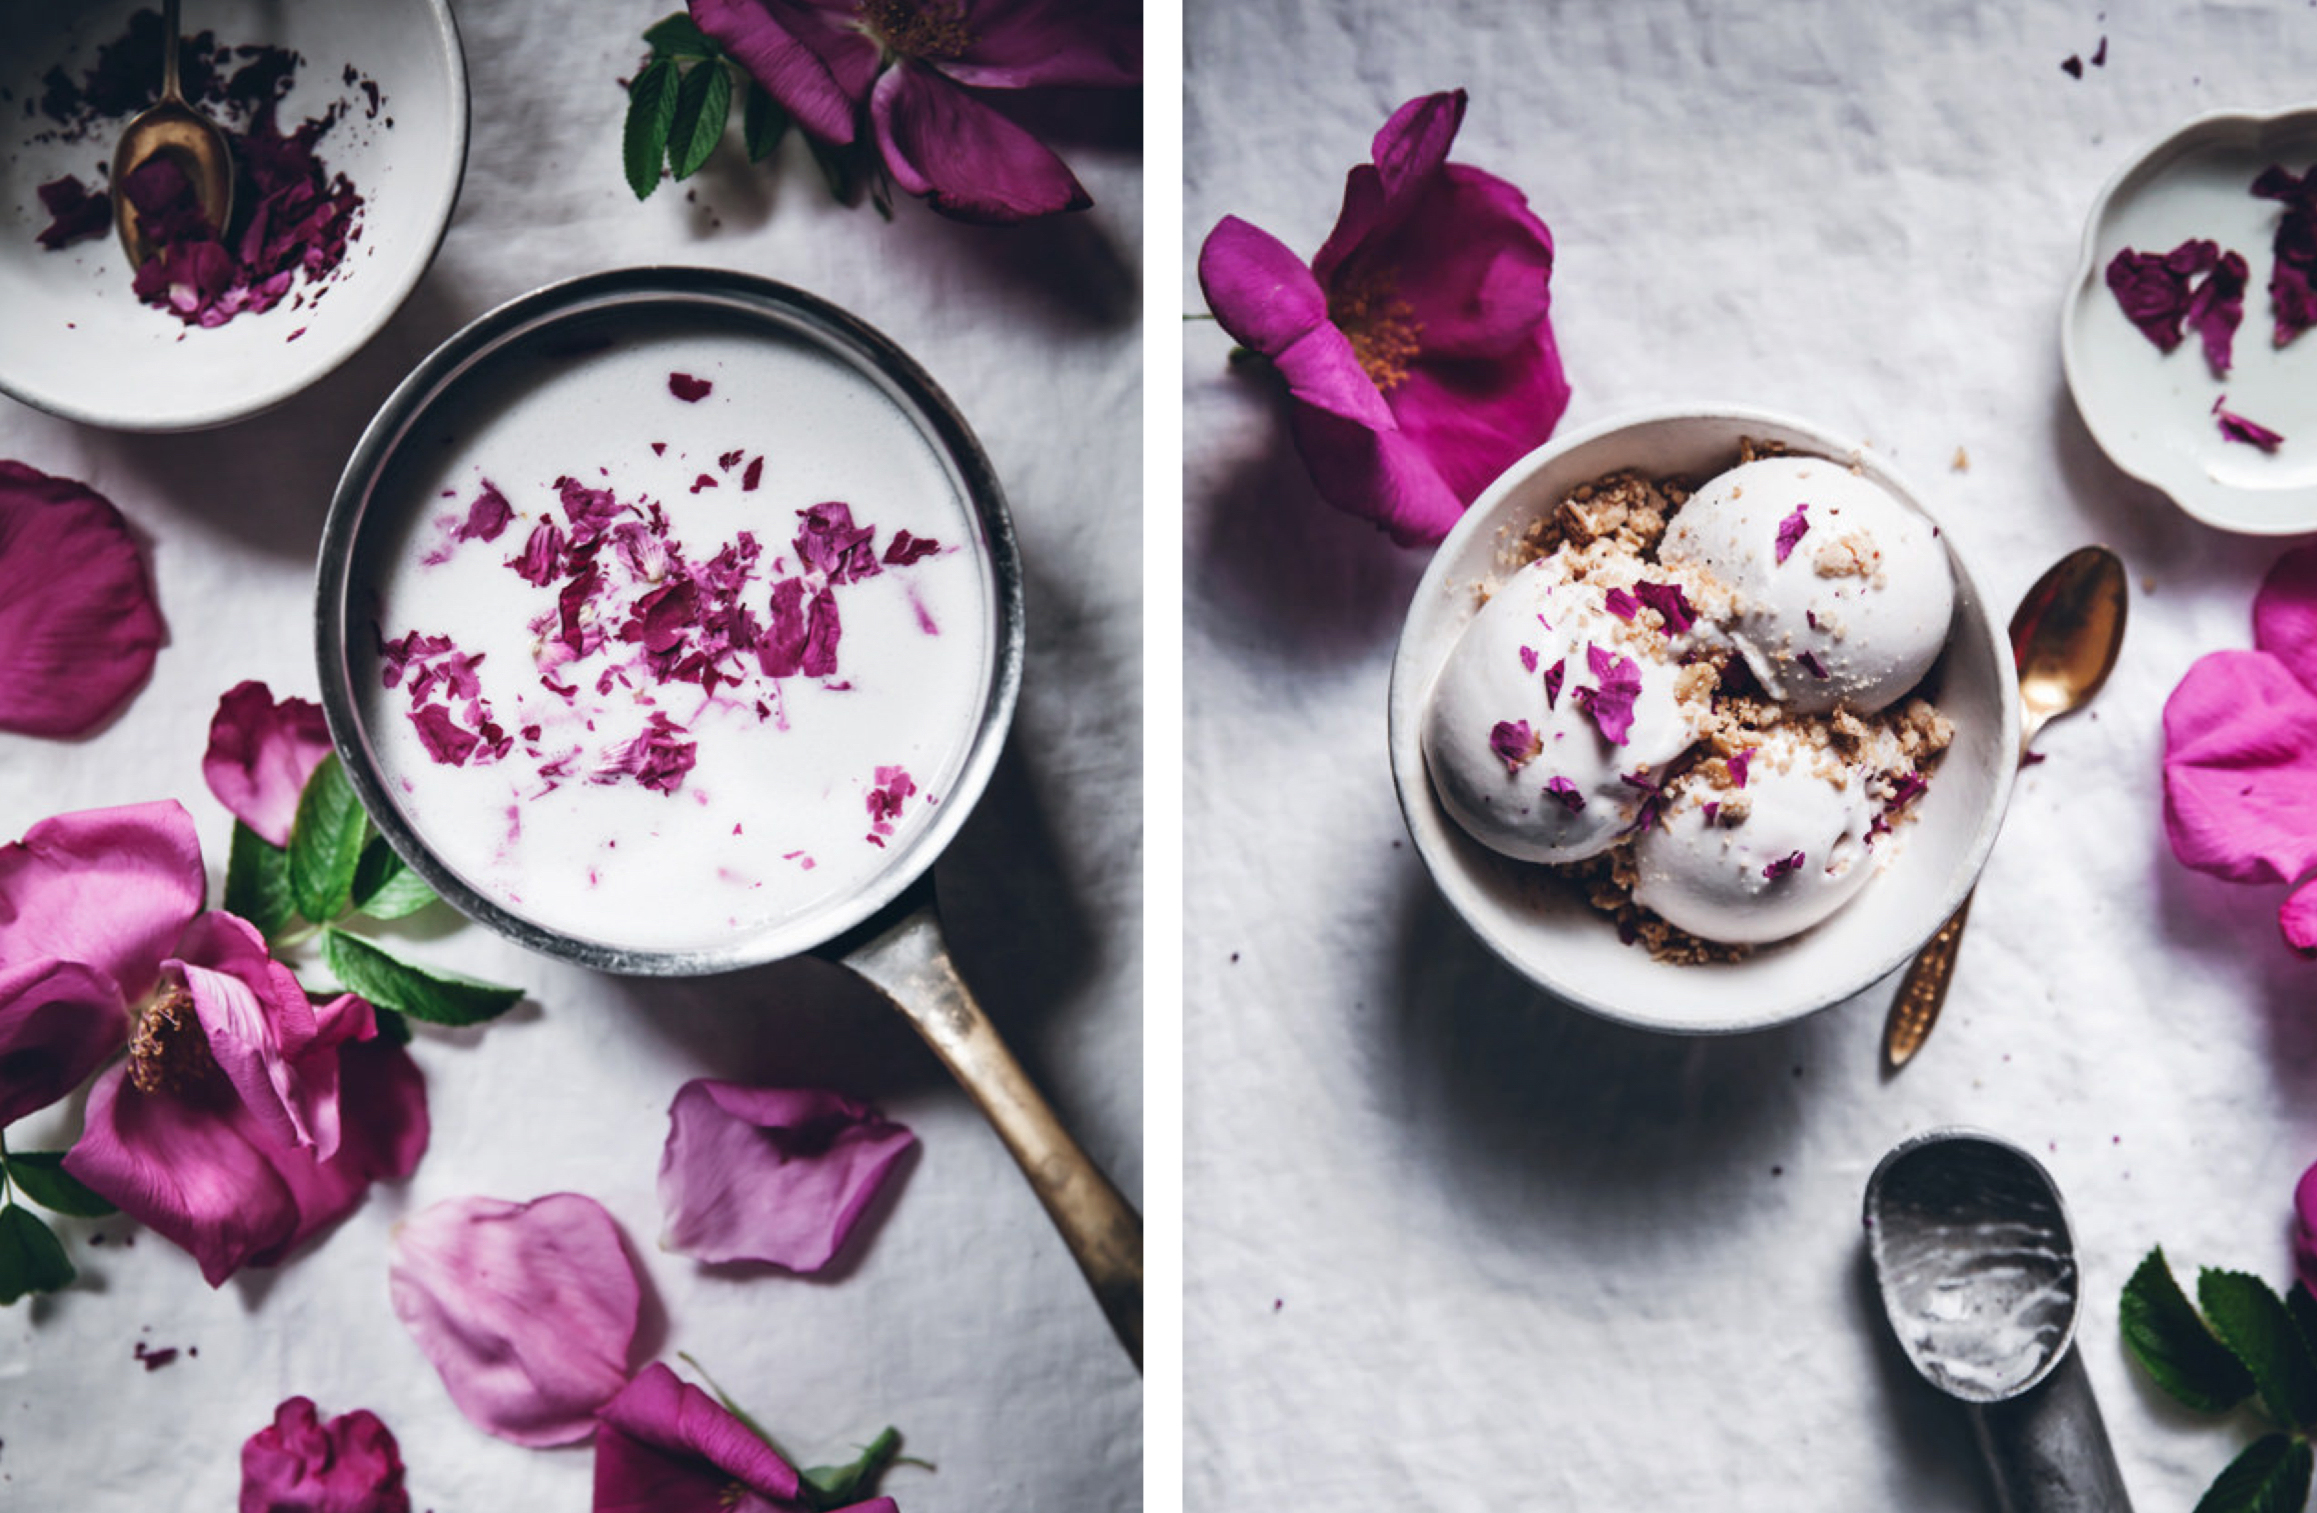 Vegan Rose Petal Ice Cream - the Round Up of Rose Recipes via @PagingSupermom